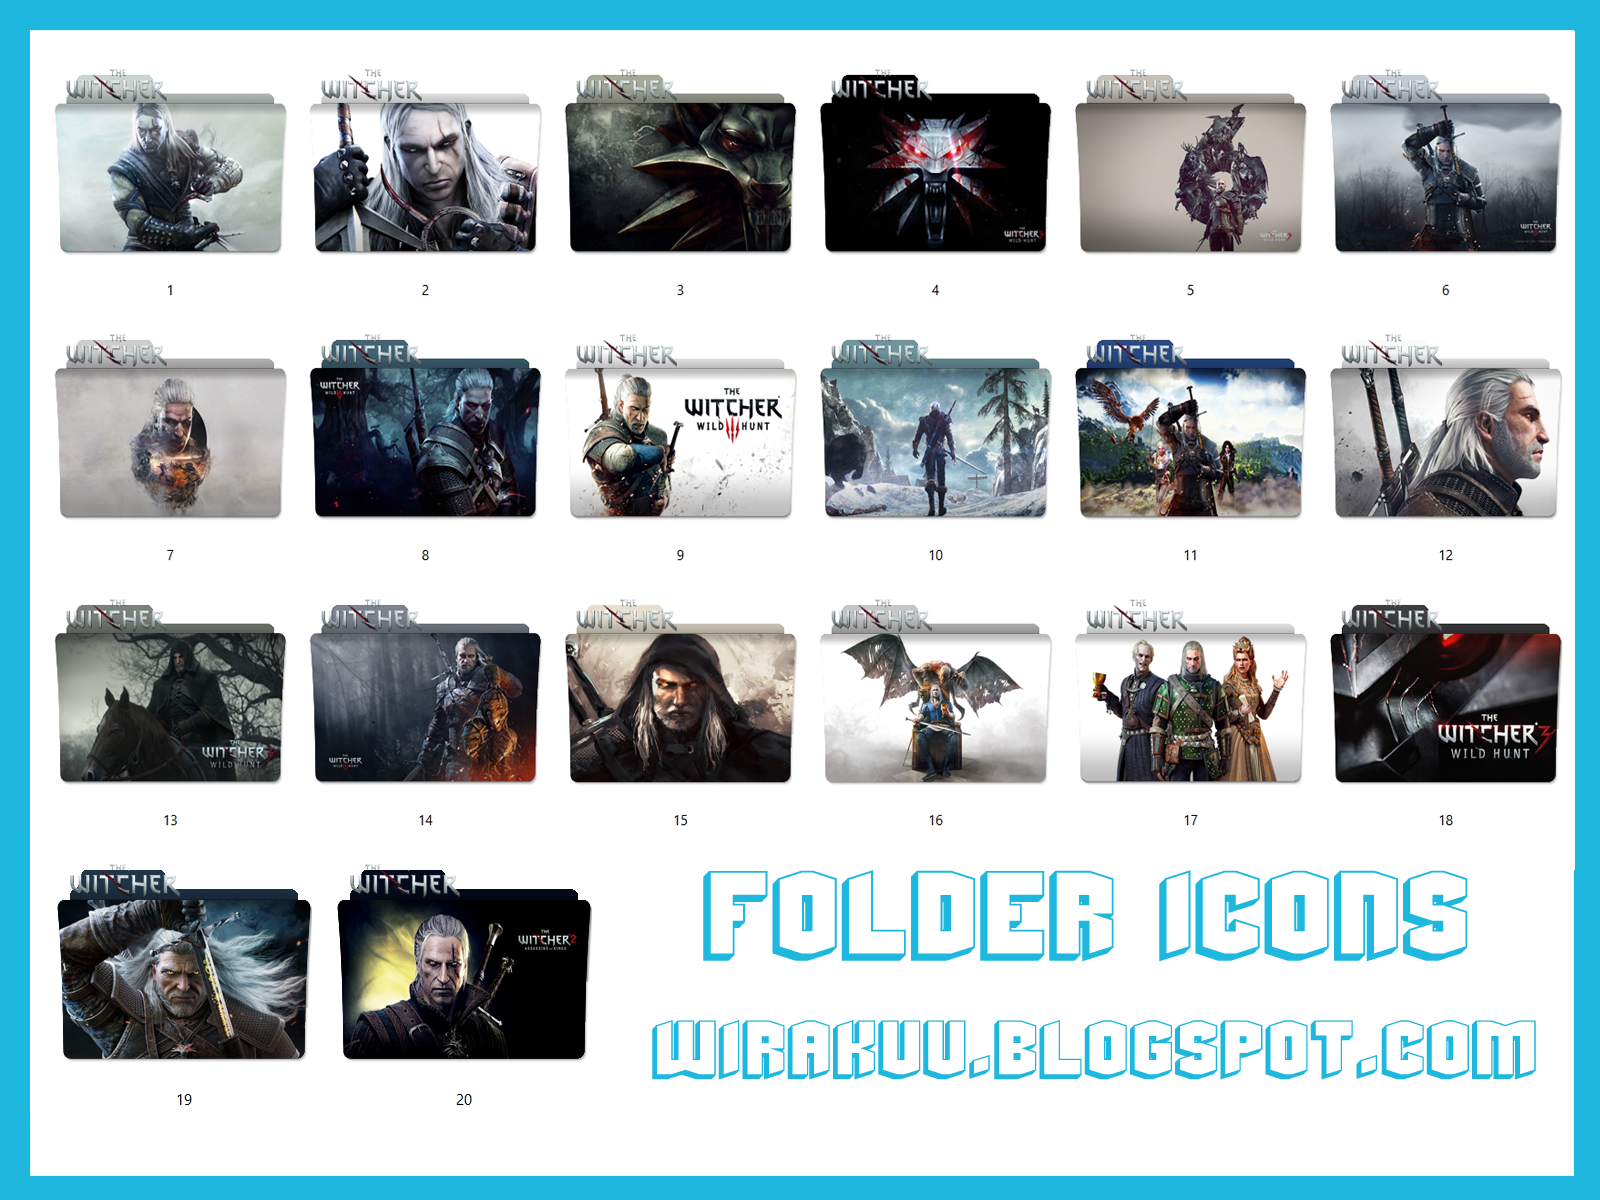 20 Folder Icons Game The Witcher (Windows 7, 8, 10)